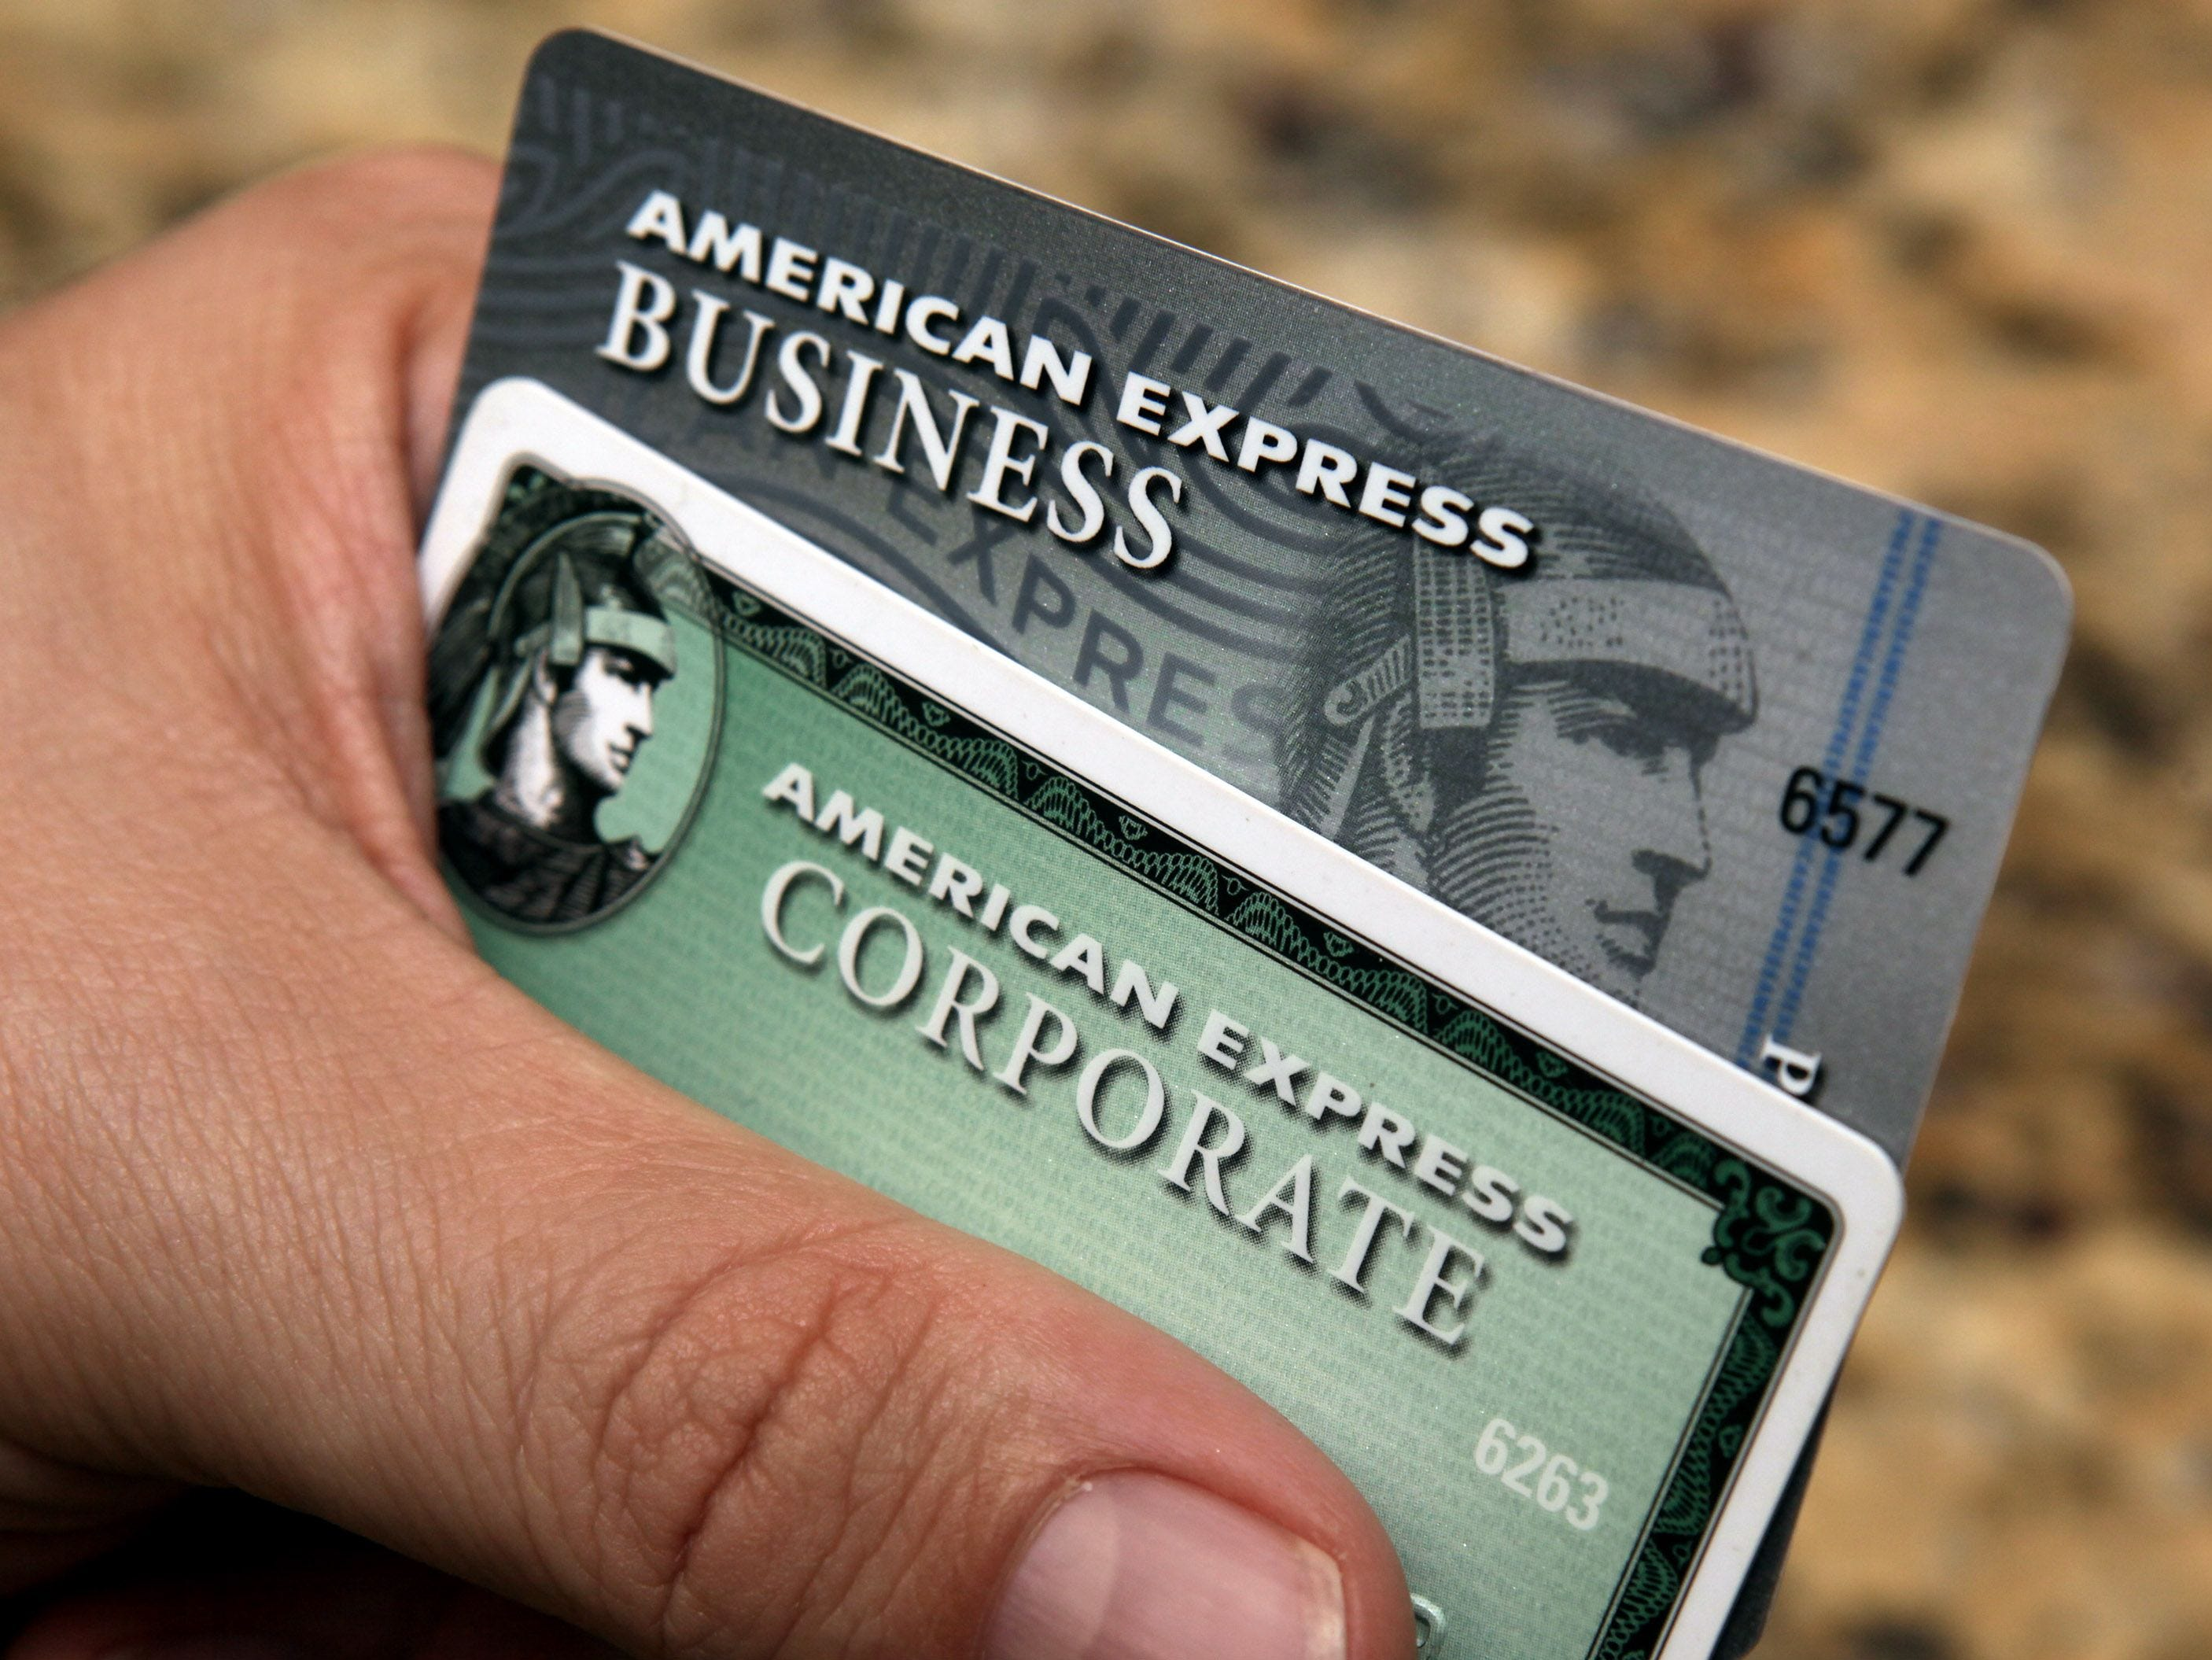 American Express, hiring 380. The financial-services company is adding jobs in the Phoenix area. More info: careers.americanexpress.com.